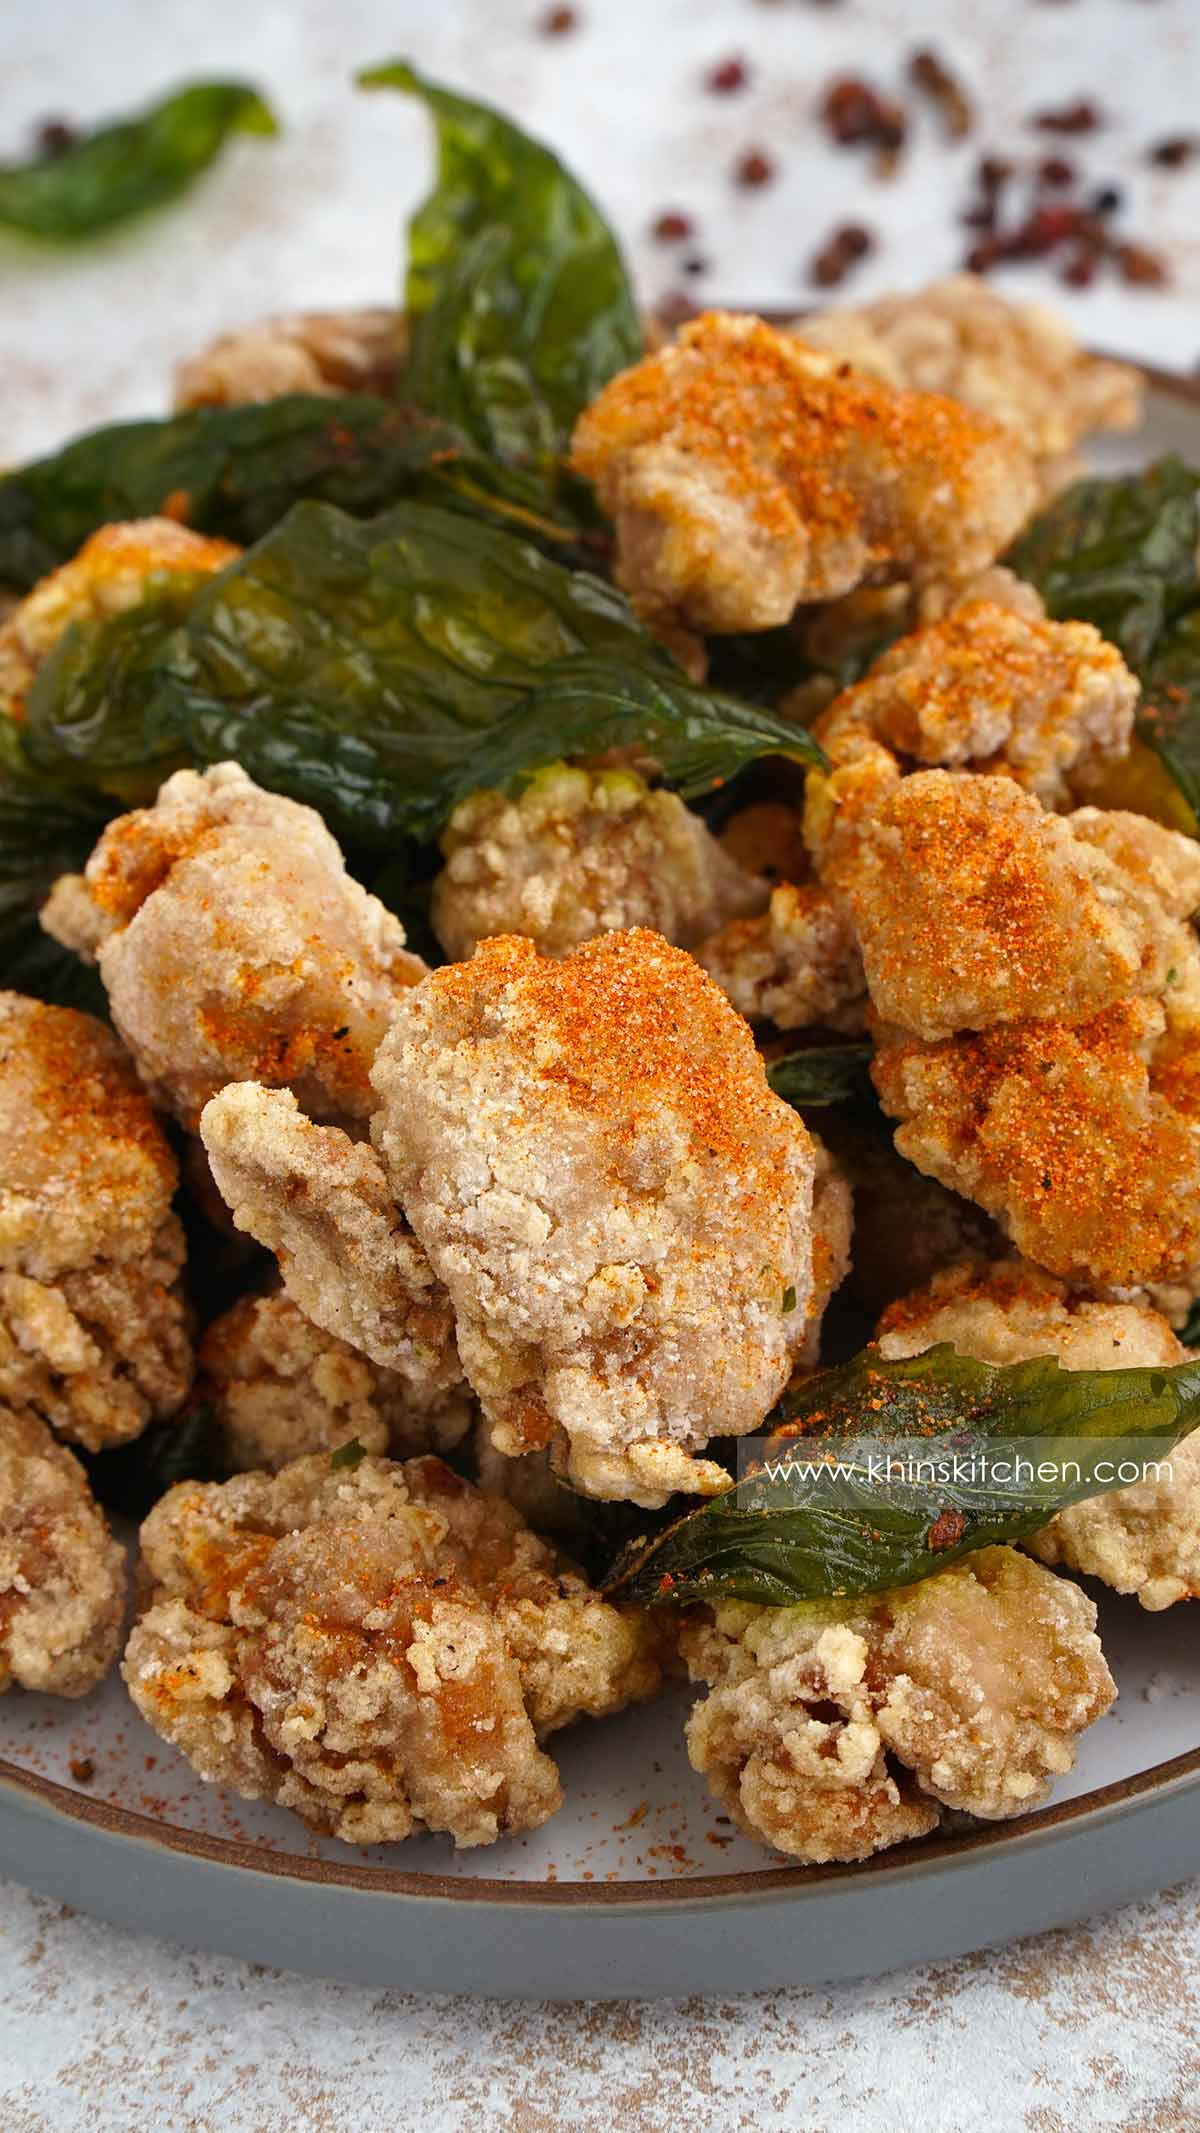 A close up view of thaiwanese style fried chicken